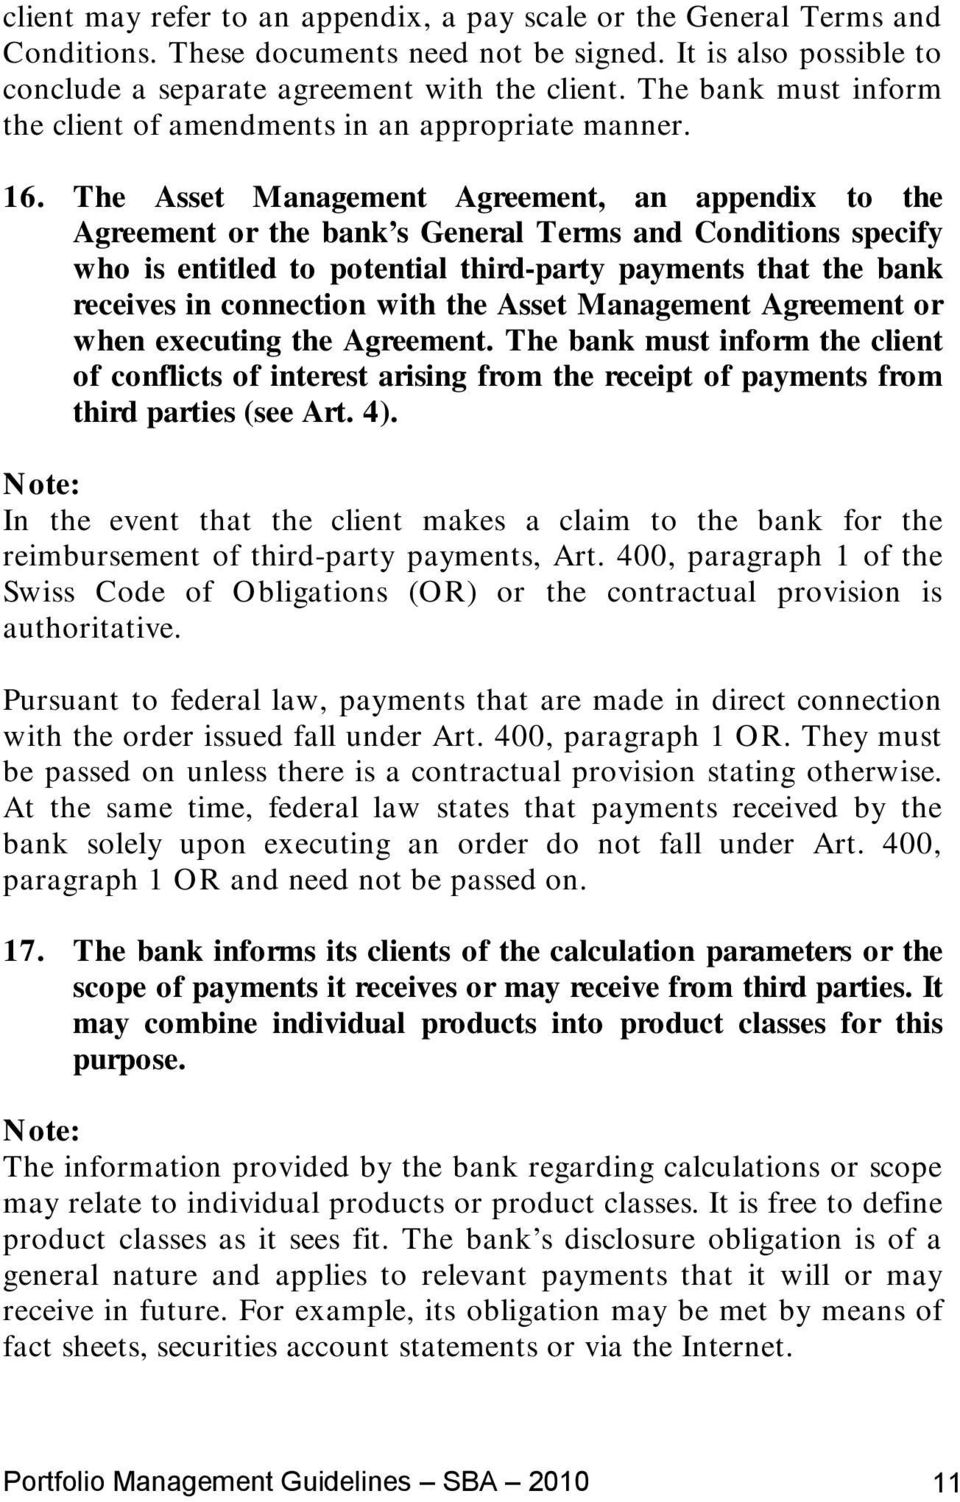 The Asset Management Agreement, an appendix to the Agreement or the bank s General Terms and Conditions specify who is entitled to potential third-party payments that the bank receives in connection